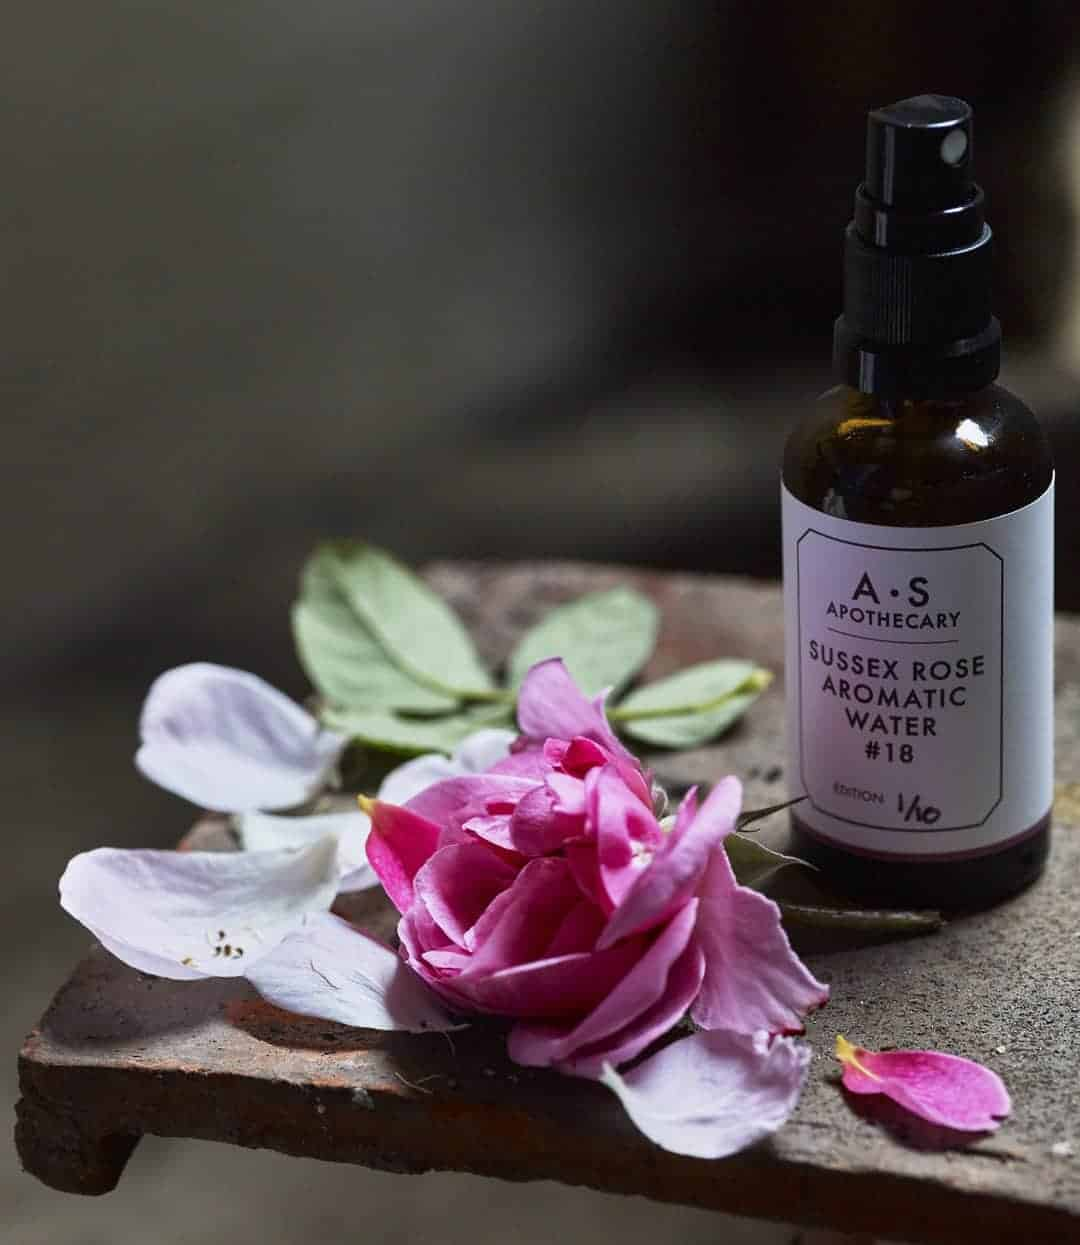 love this rose aromatic rose water by A S Apothecary. Click through for more ethical gift ideas for Christmas you'll love #ShopEhicalInstead #ethicalgifts #madeinbritain #frombritainwithlove #sustainablegifts #ethicalhour #zerowaste